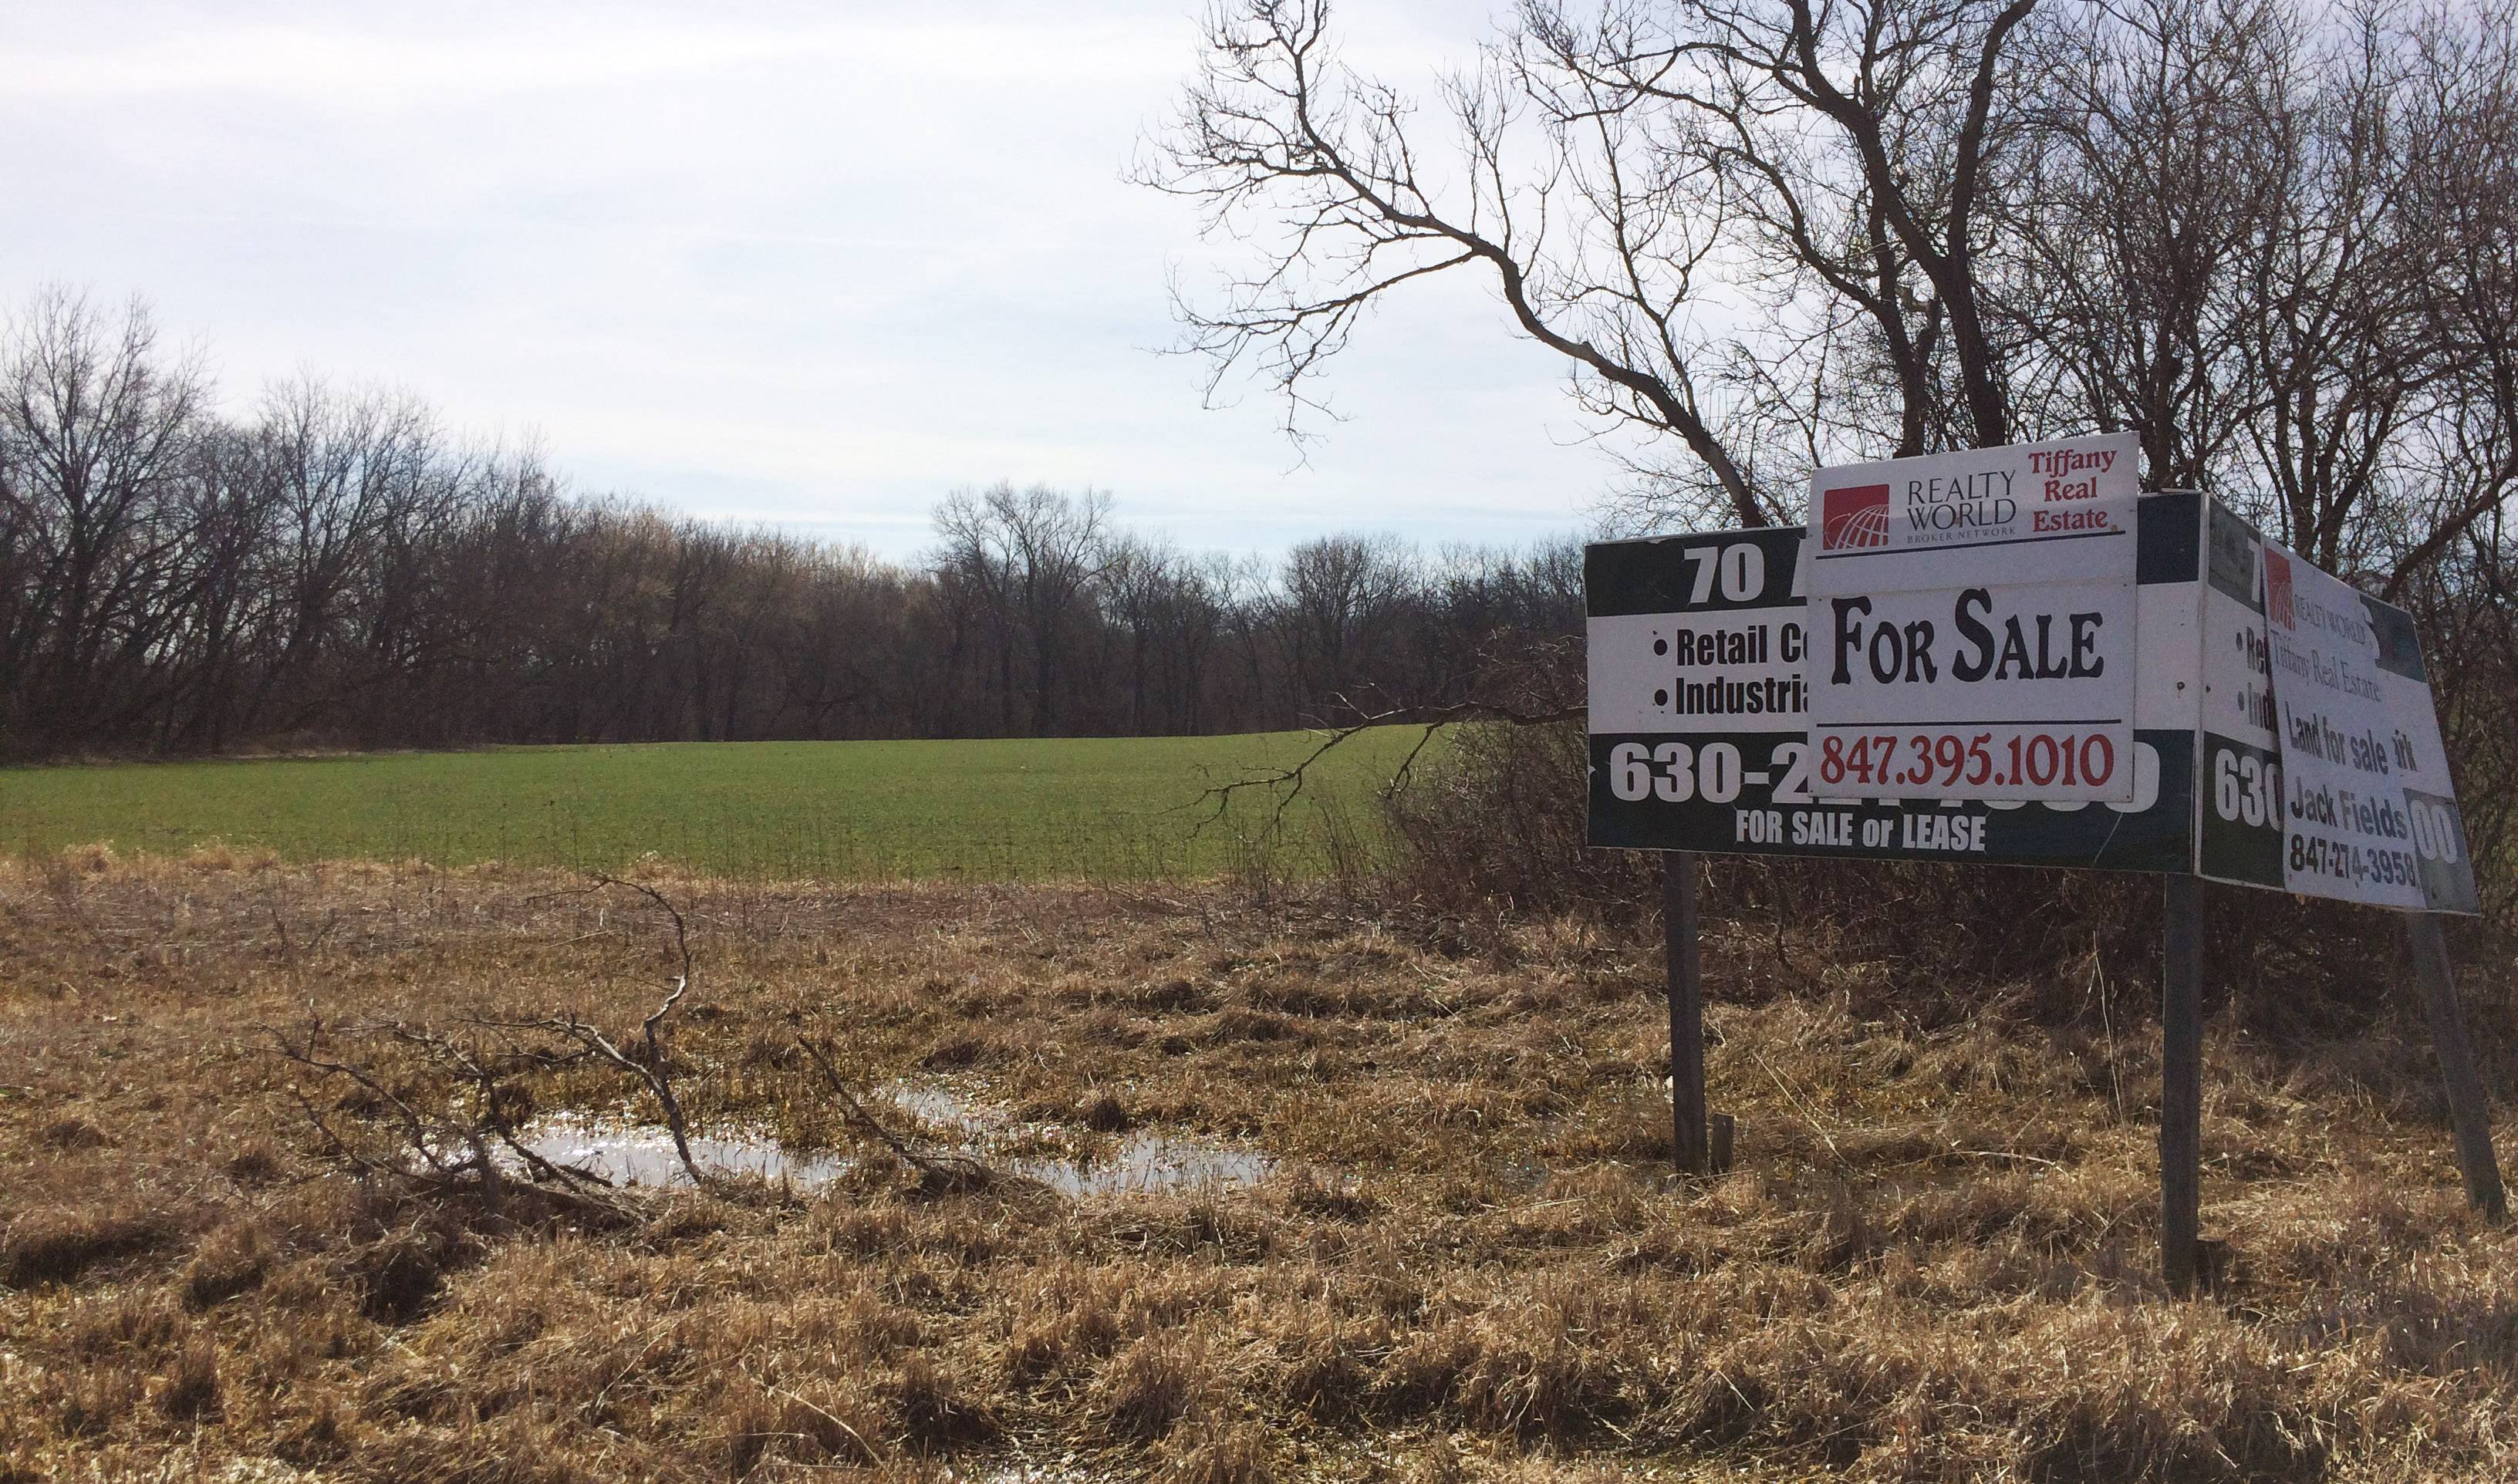 Antioch is proceeding with a study to determine whether they can create a tax increment financing district for 50 undeveloped acres the village bought two years ago near Route 173 and Grimm Road.